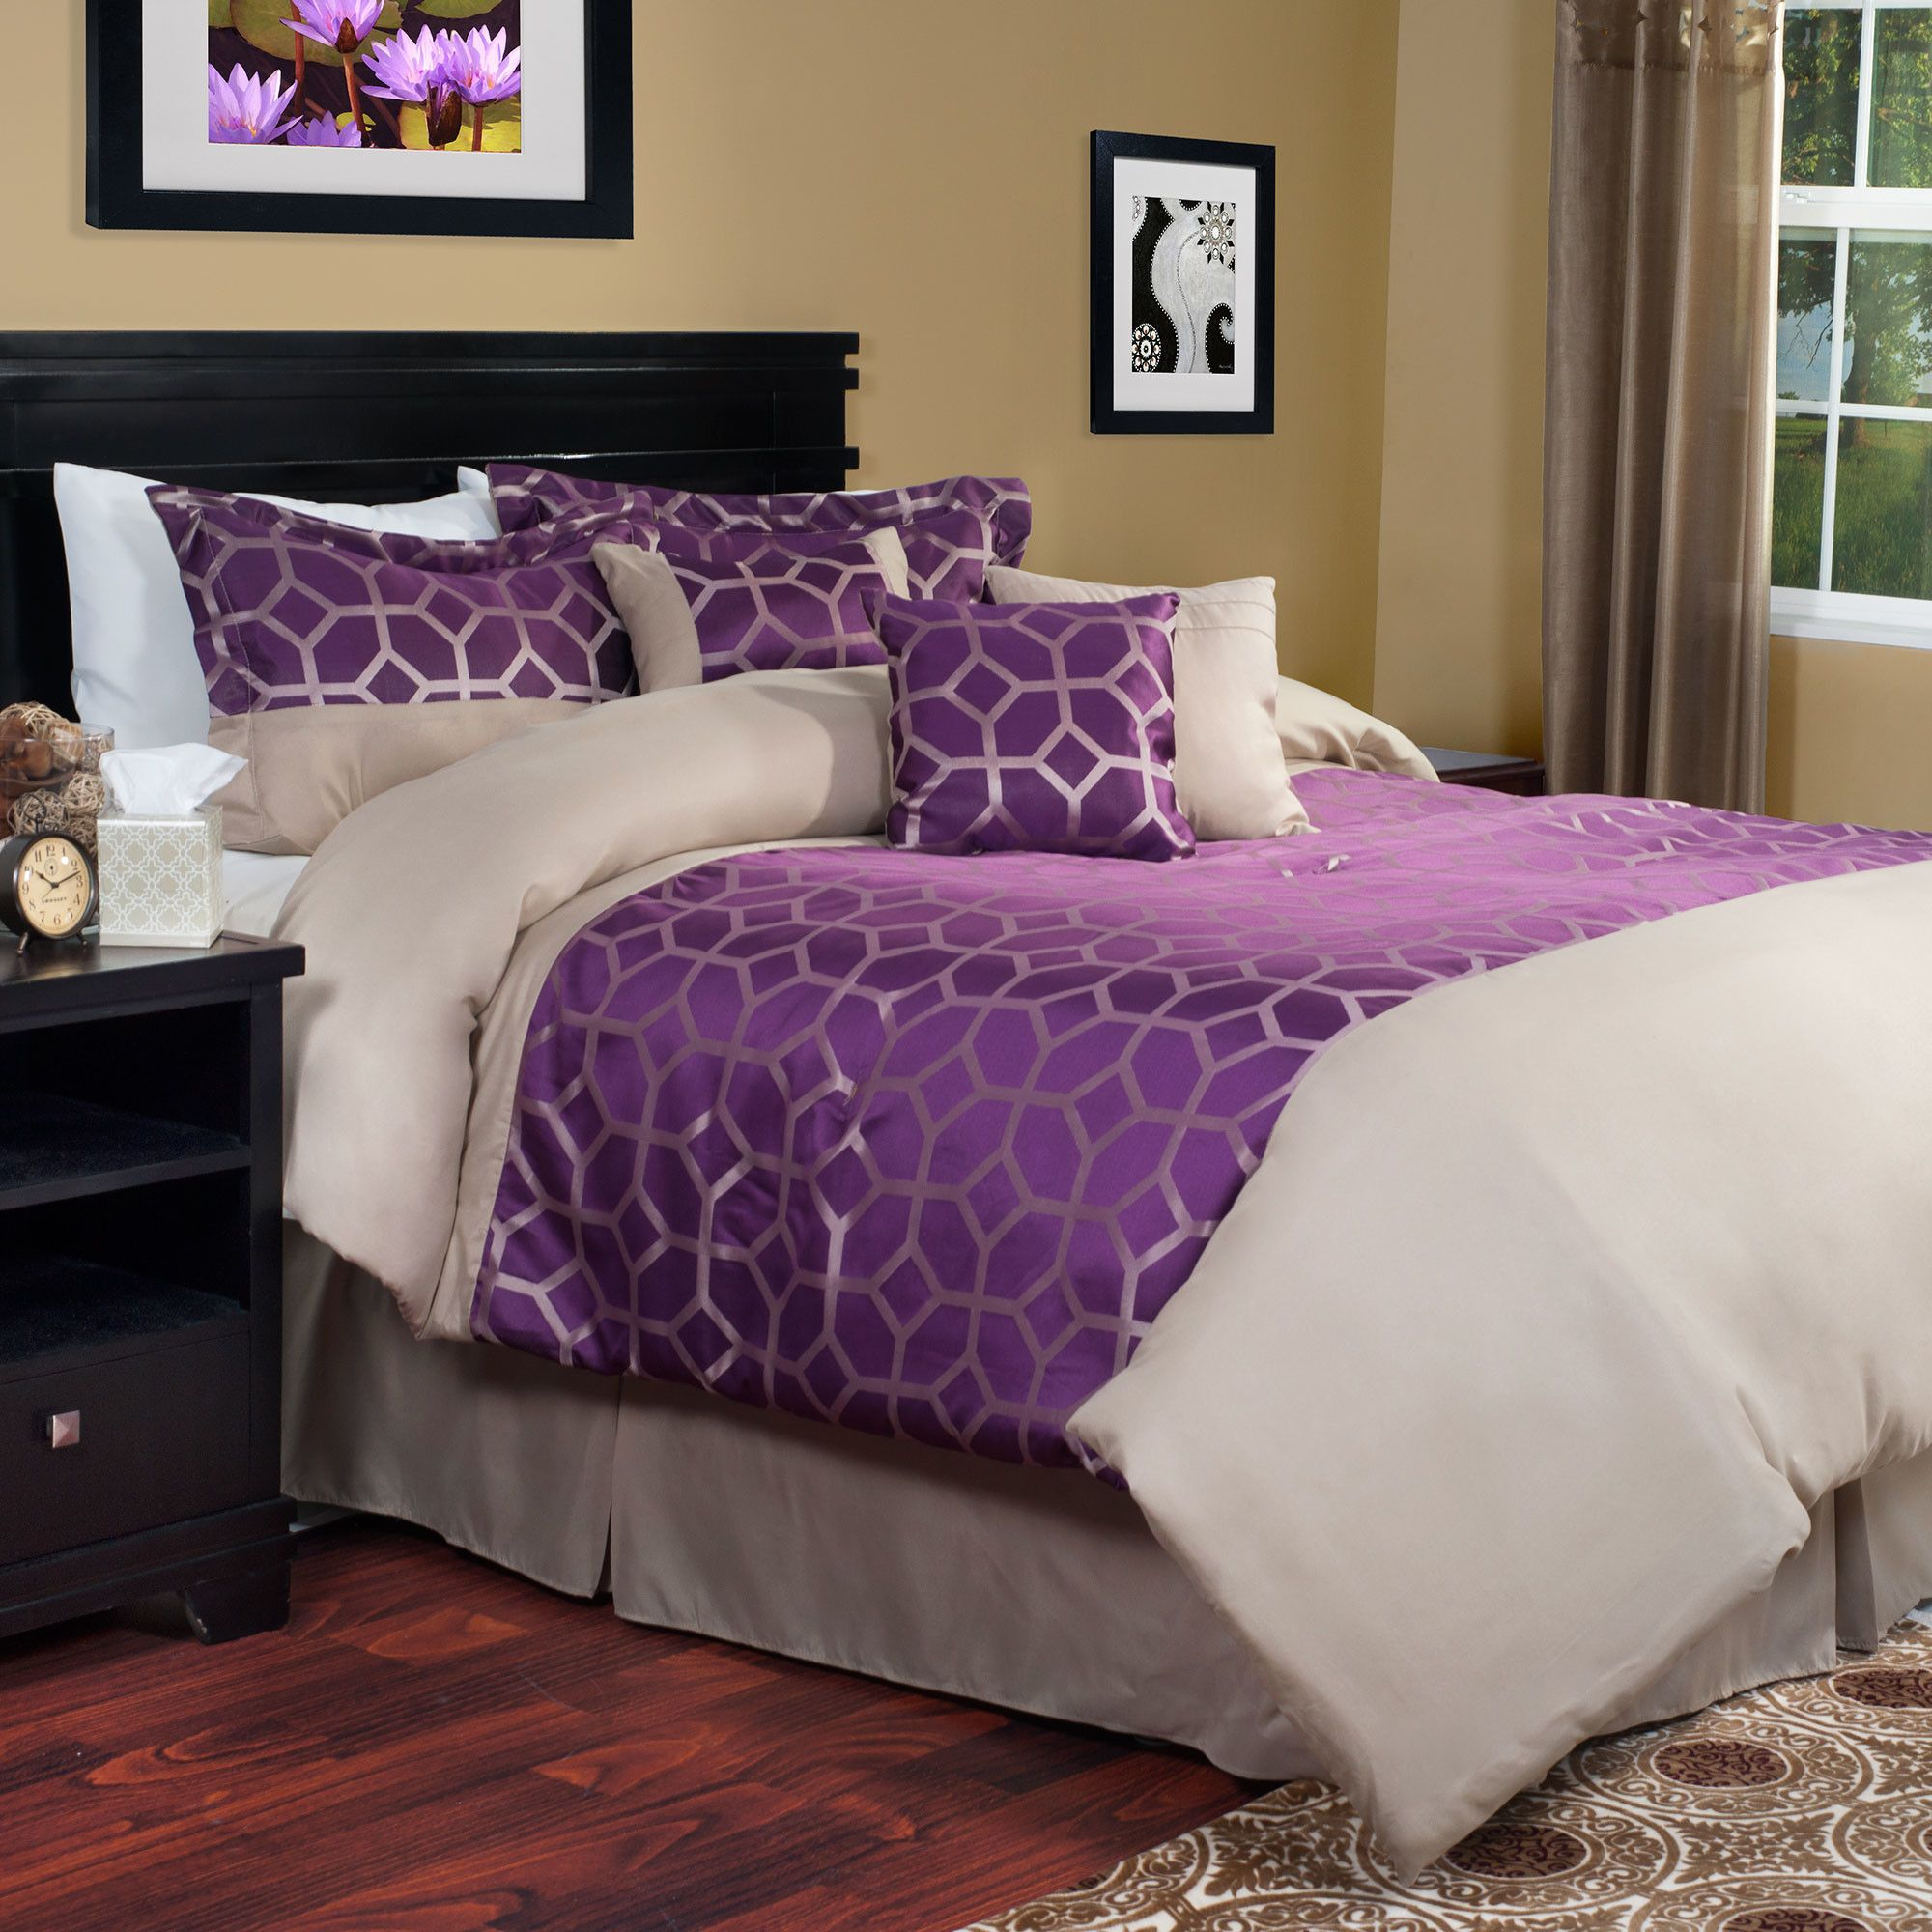 This purple and gold geometric print bedding set has a Moroccan